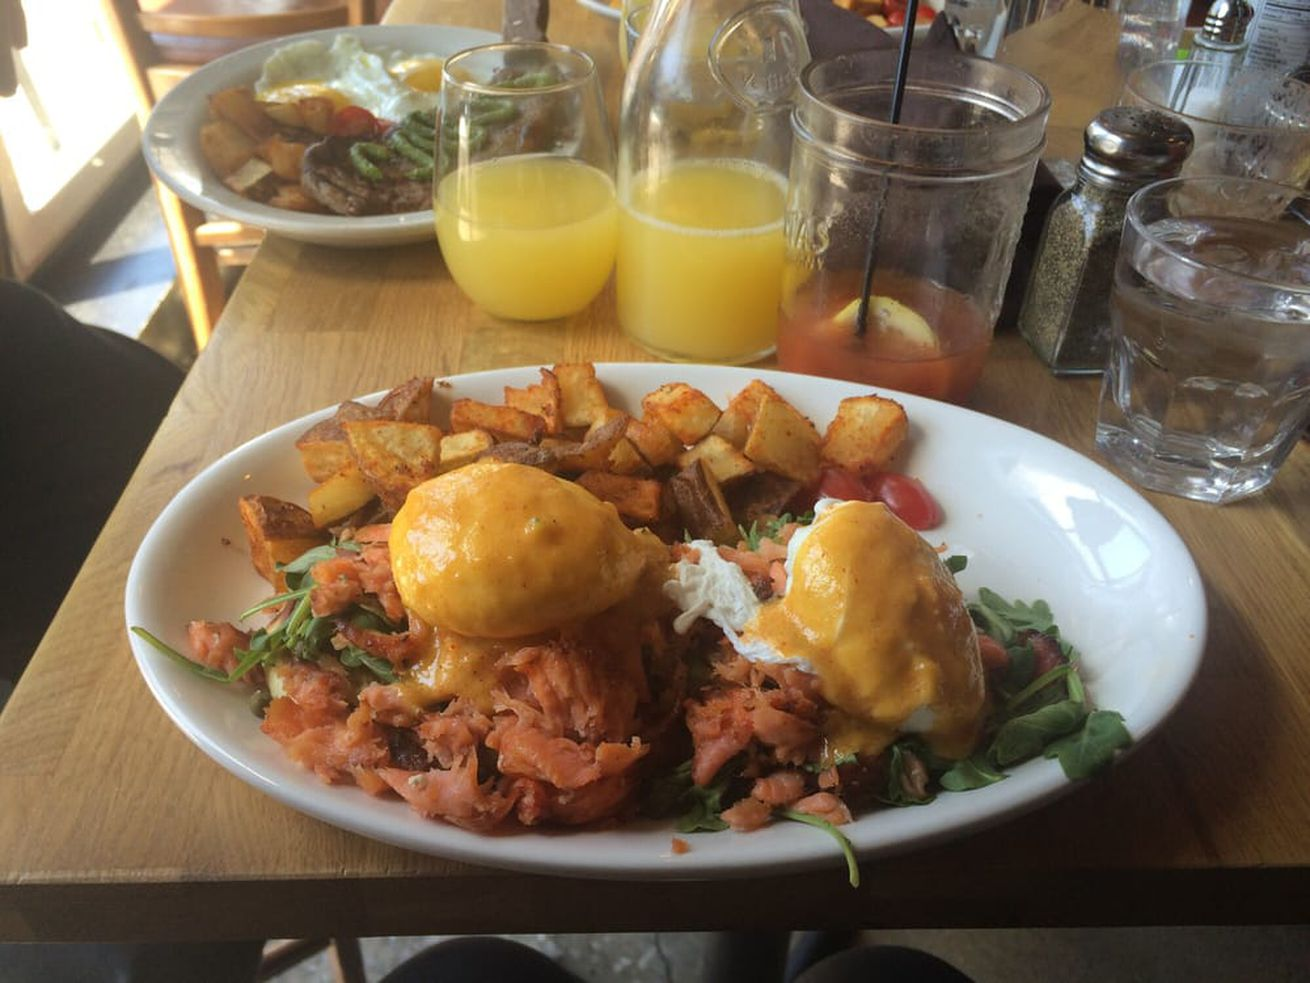 Lokal Wicker Park was popular for its Benedicts and bottomless mimosas